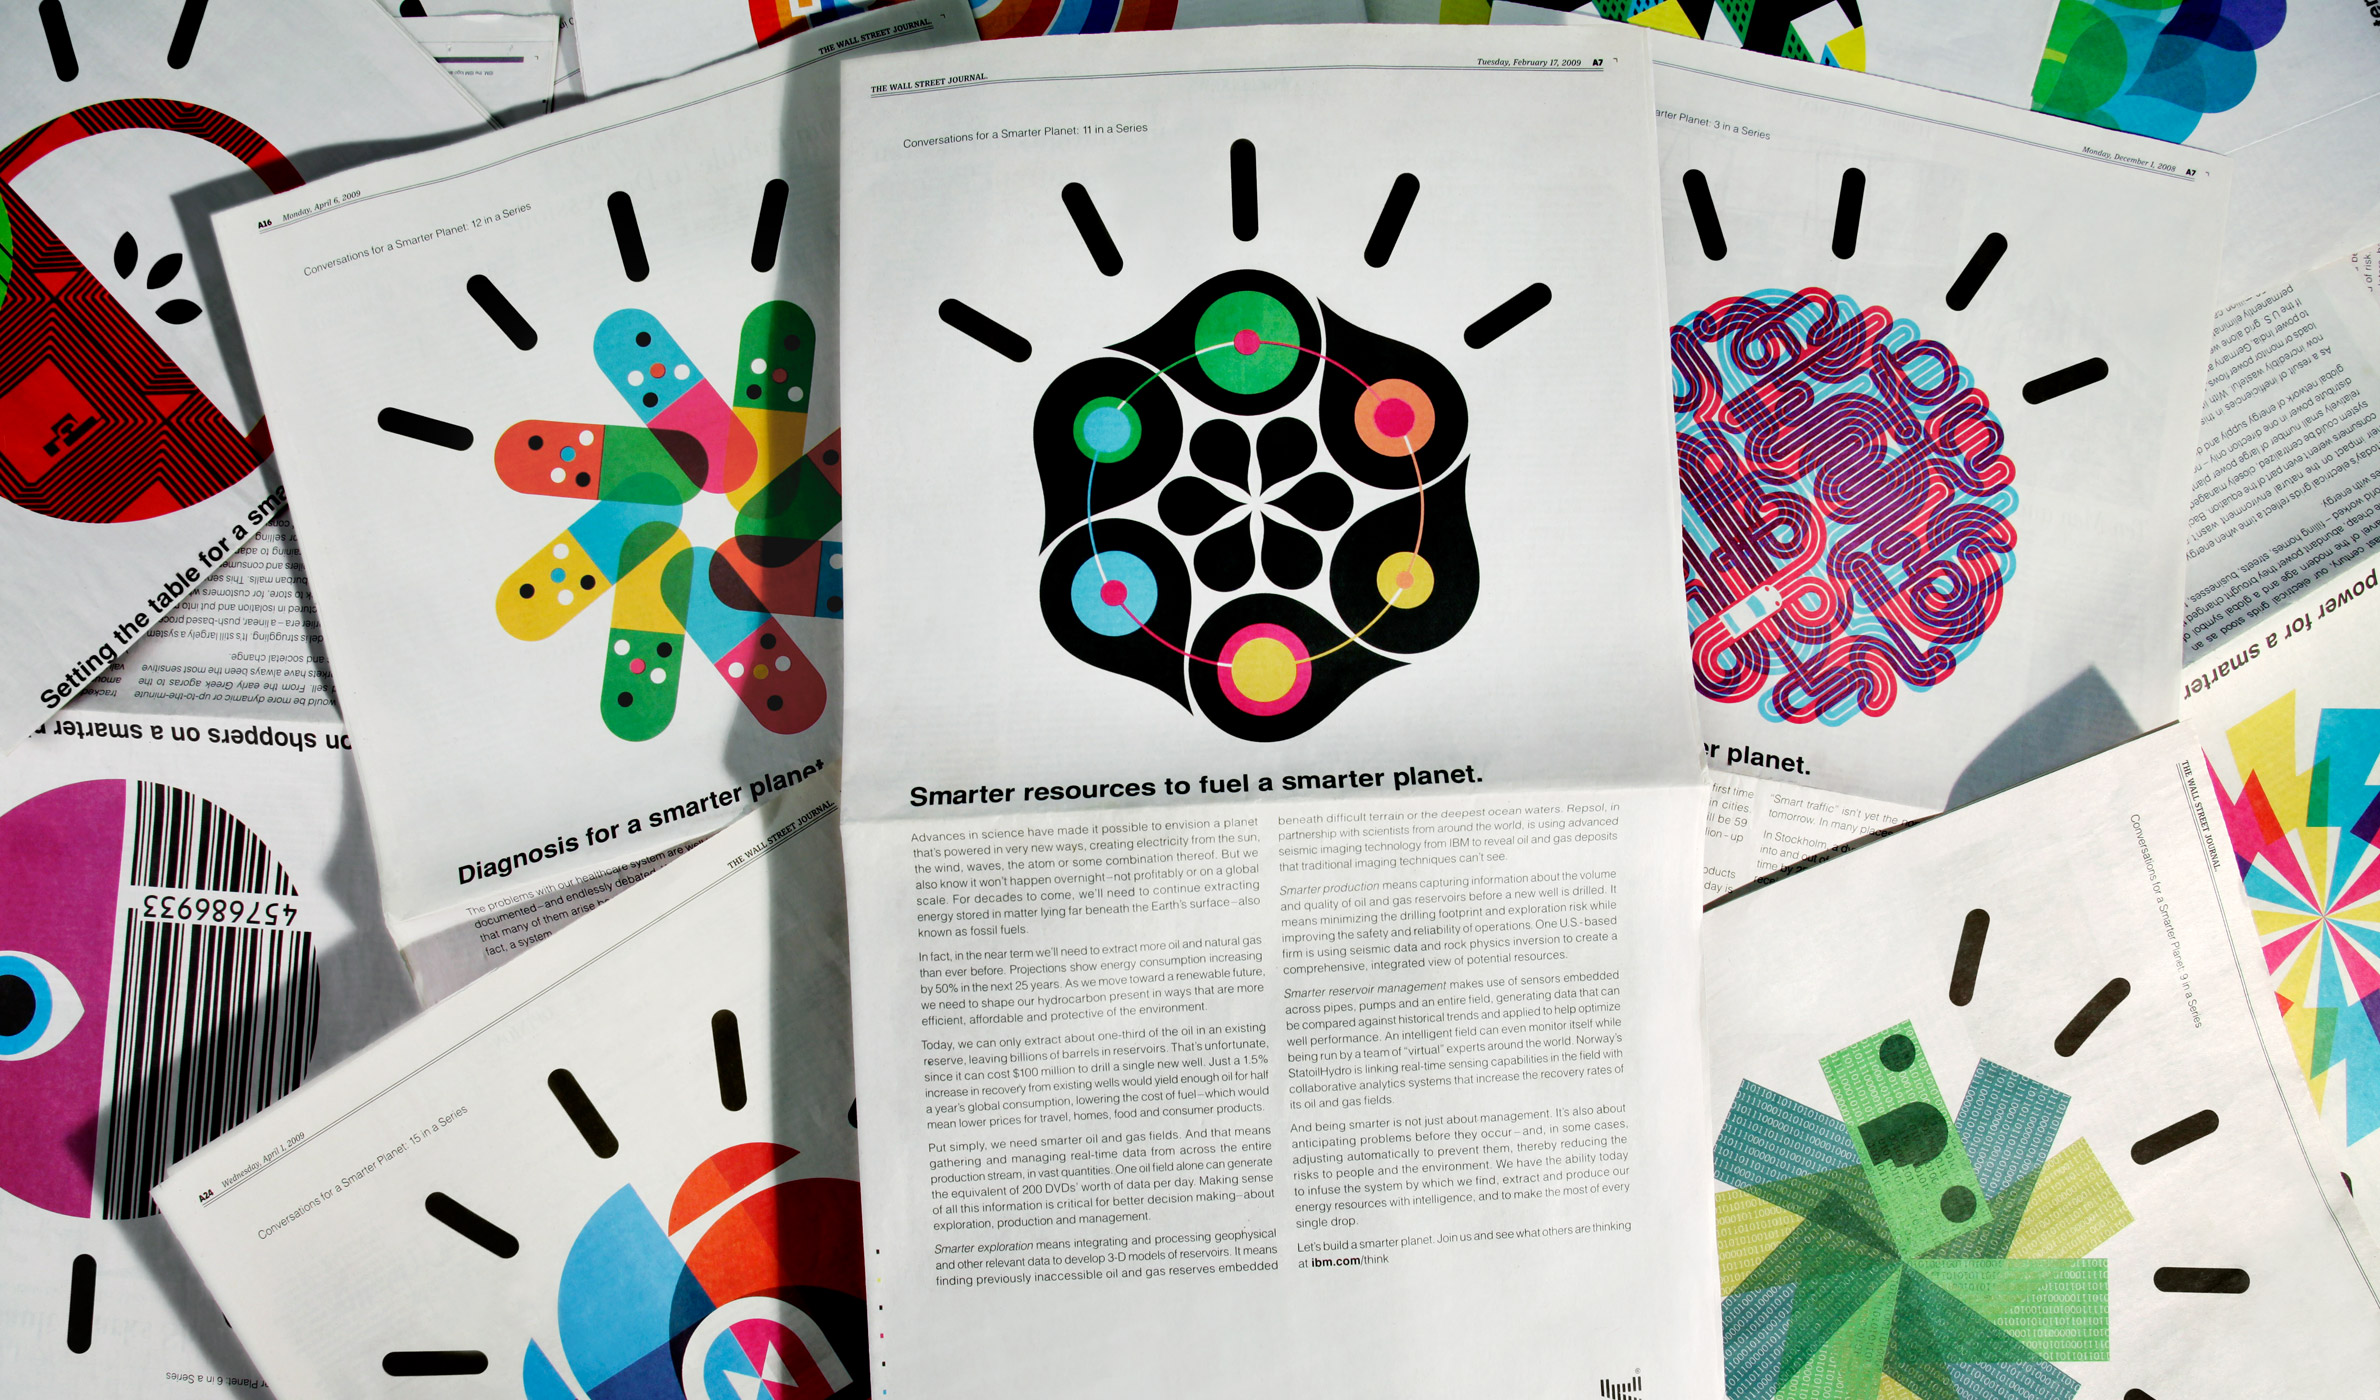 IBM Smarter Planet visual language designed by Office-001